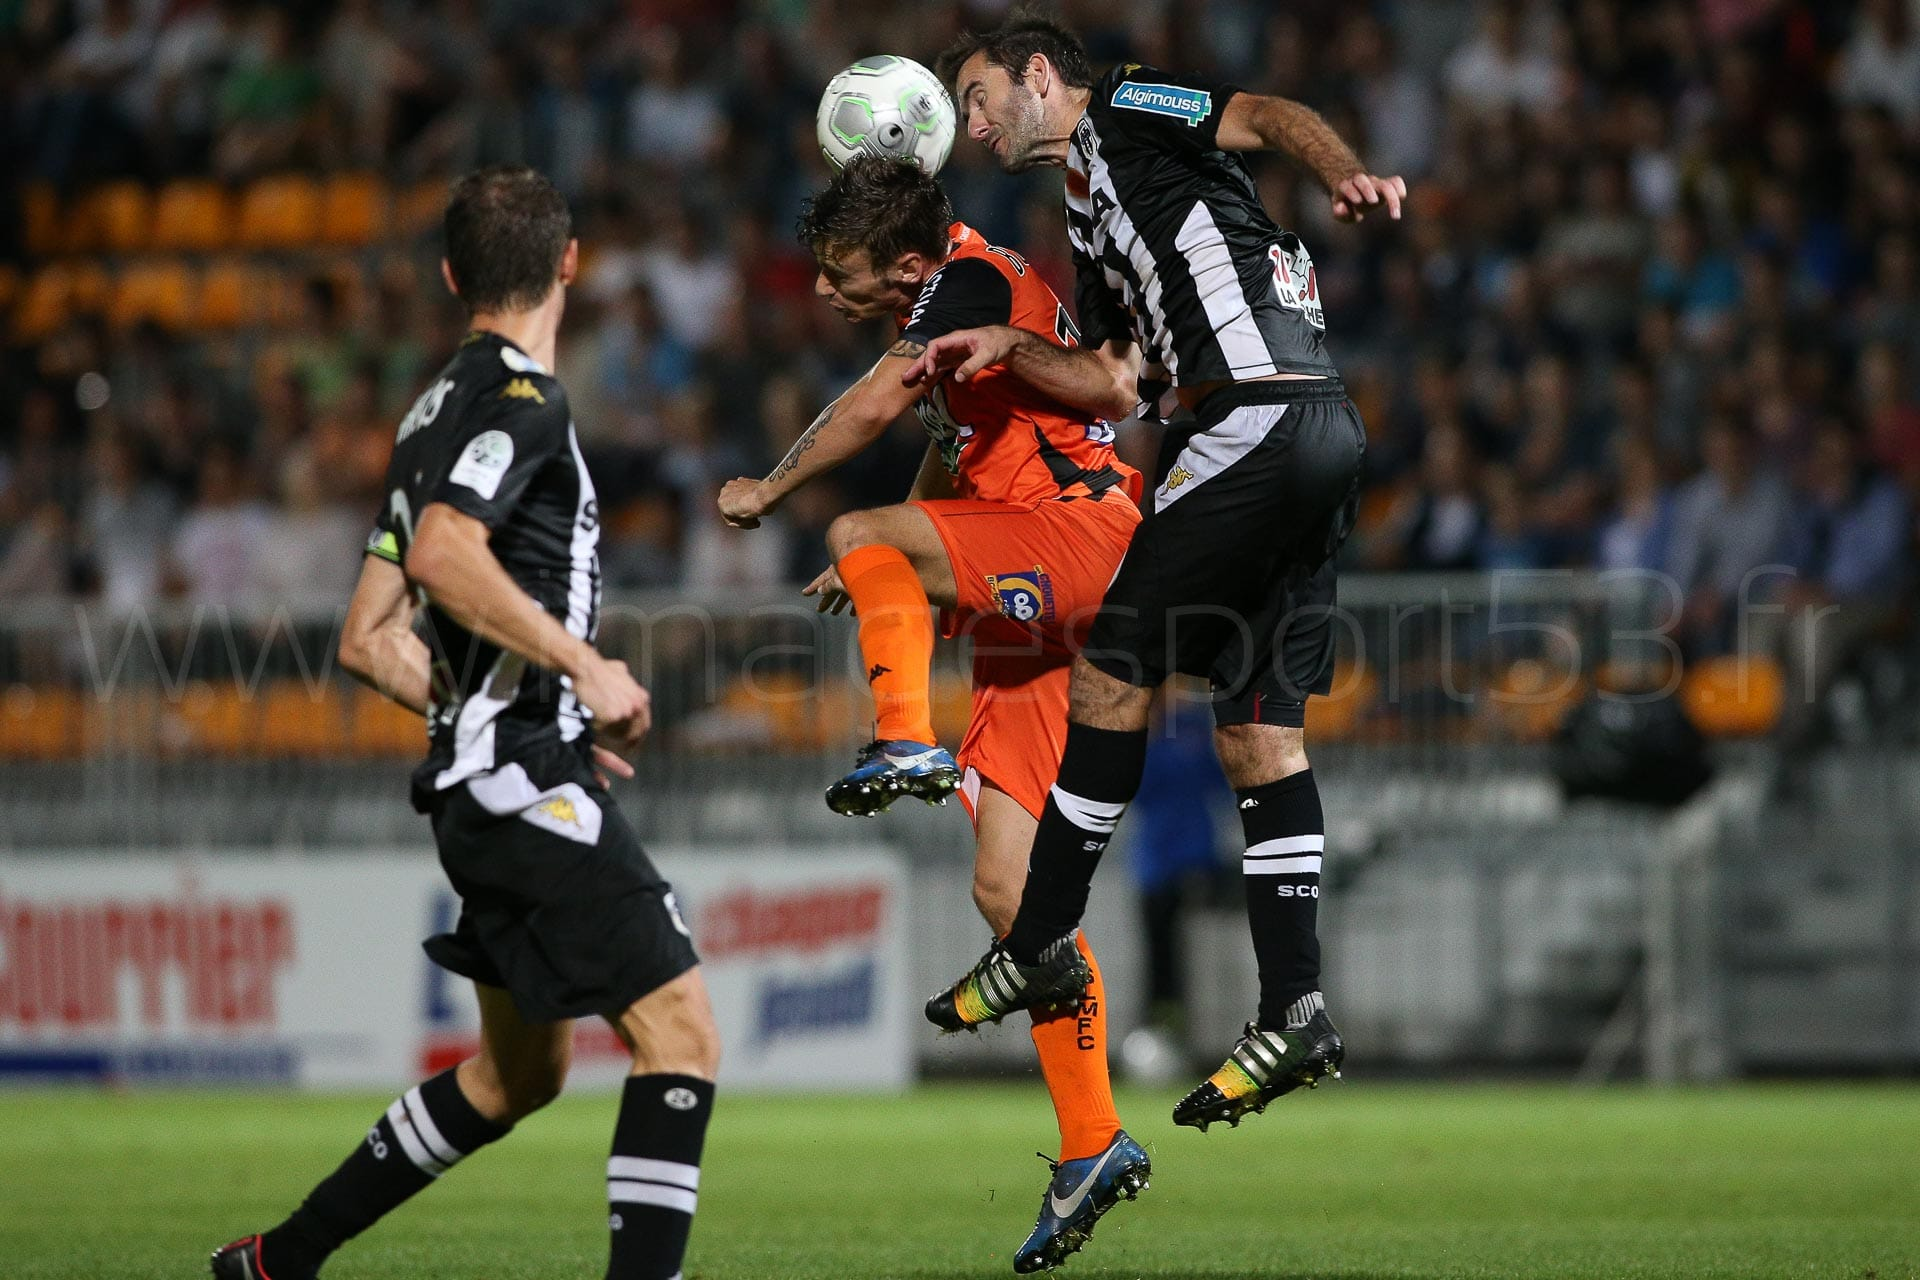 NG-Ligue2-1415-J07-Laval-Angers_25